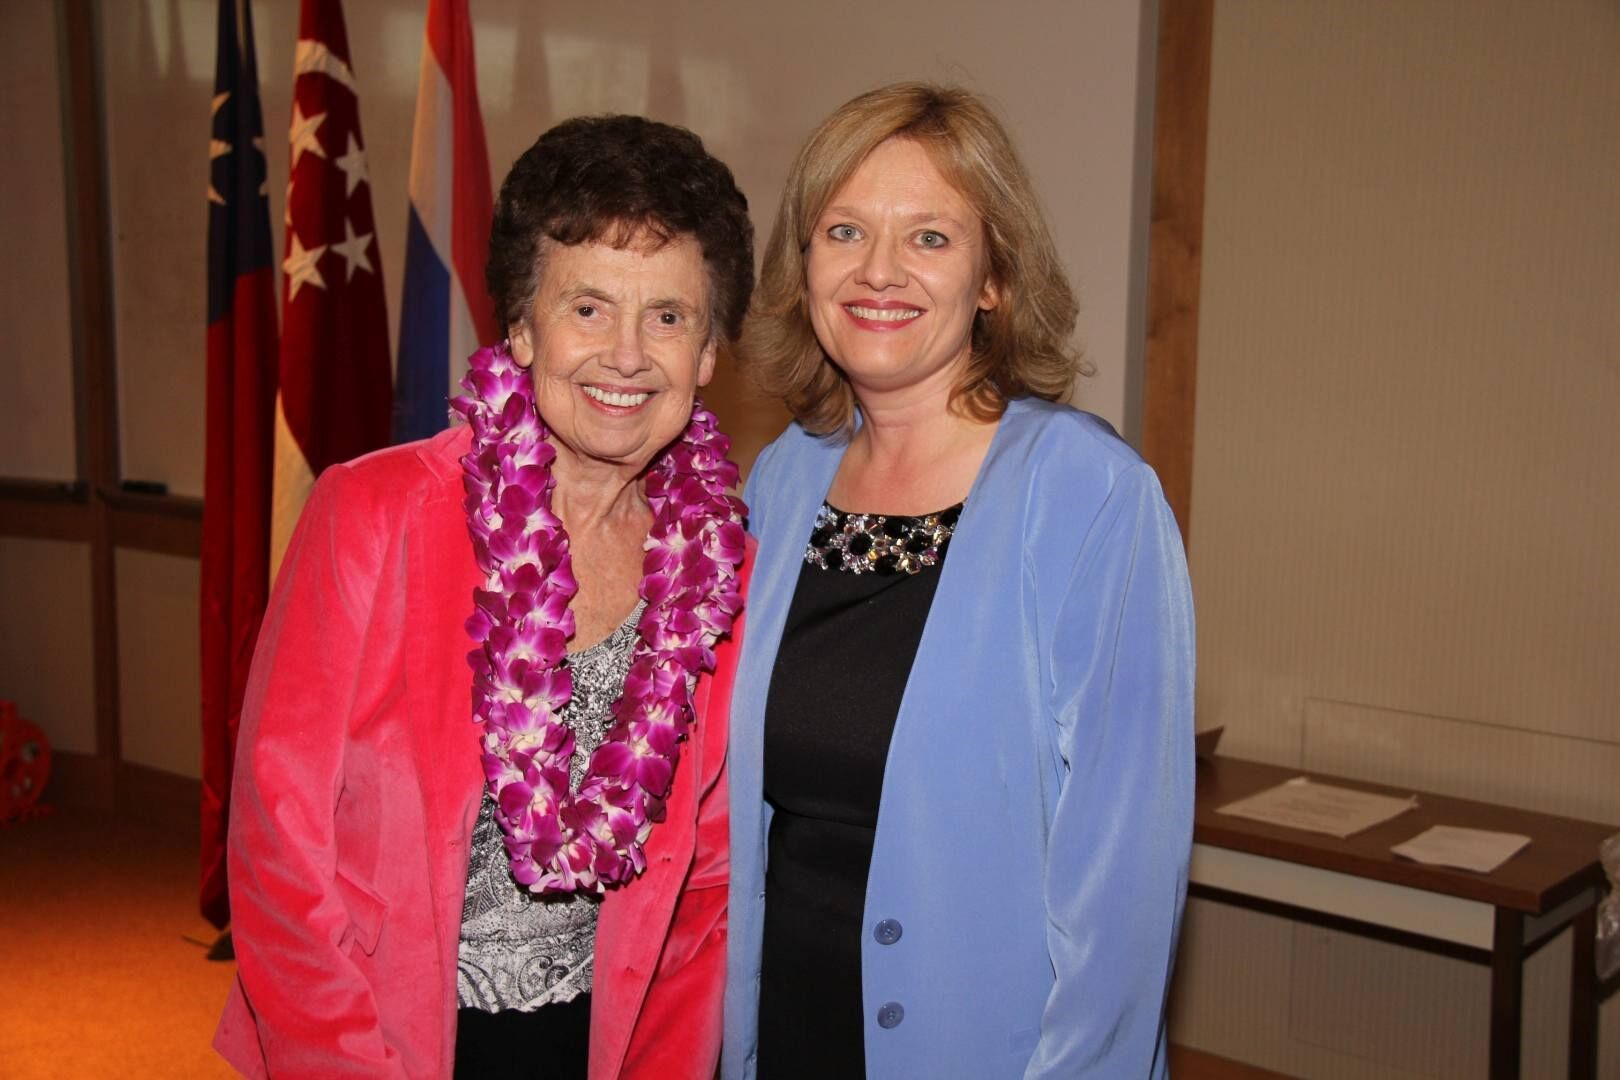 Dr. Iris Mamier and Dr. Patricia Foster